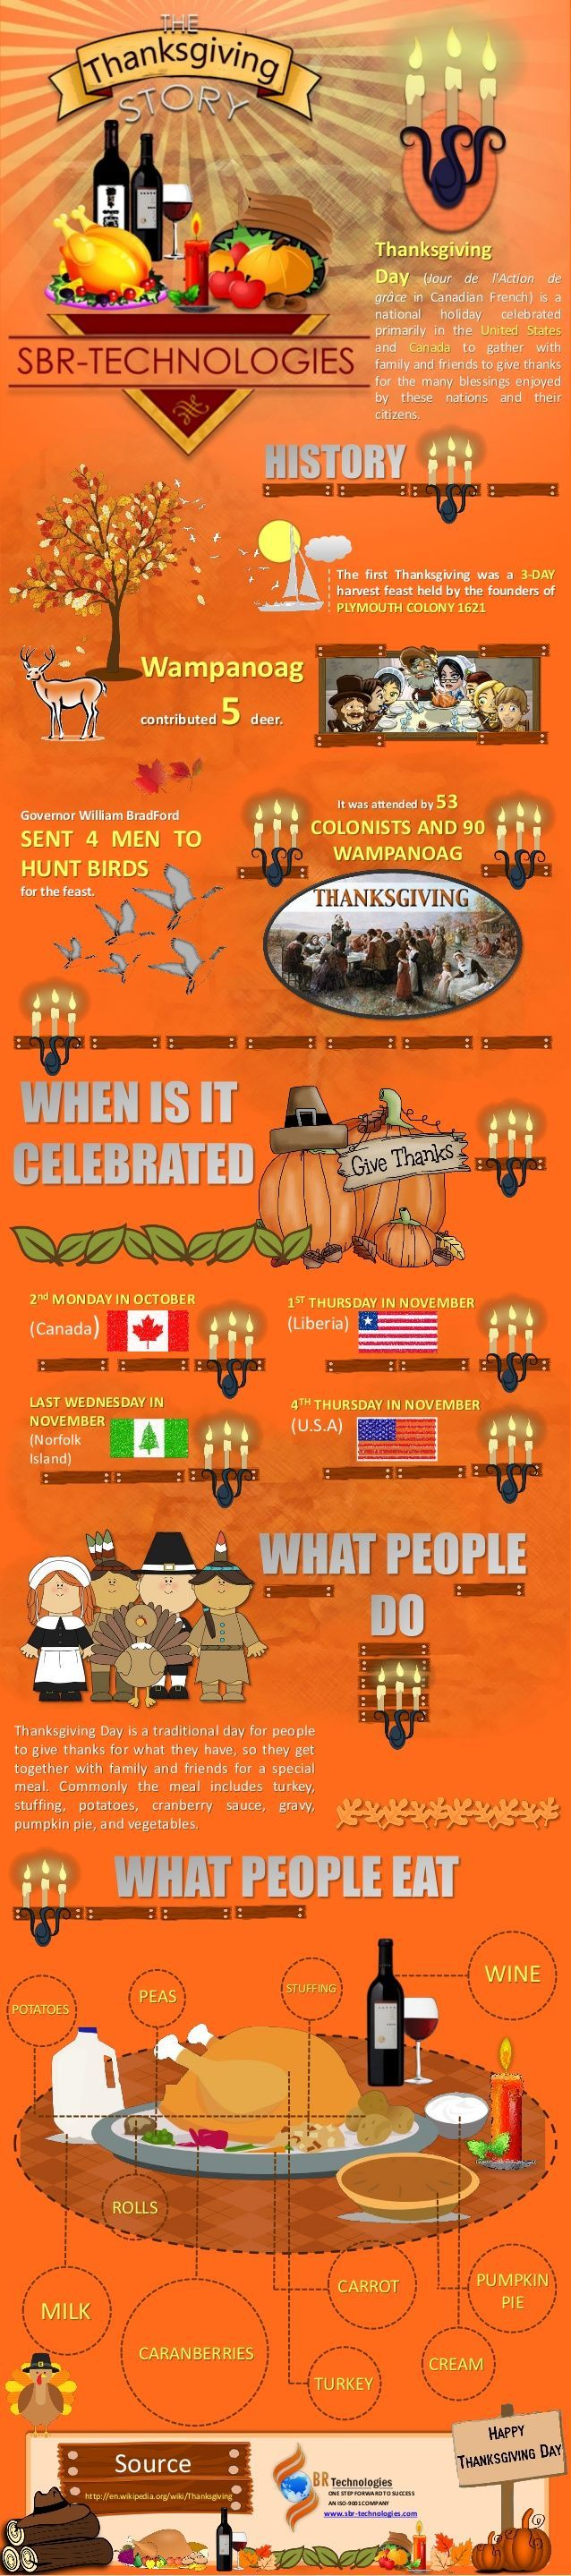 It S Time For Thanksgiving So Know Why You Have Been Celebrating Thanksgivin Celebrating Thanksgiving Day Thanksgiving Appetizers Fall Crockpot Recipes